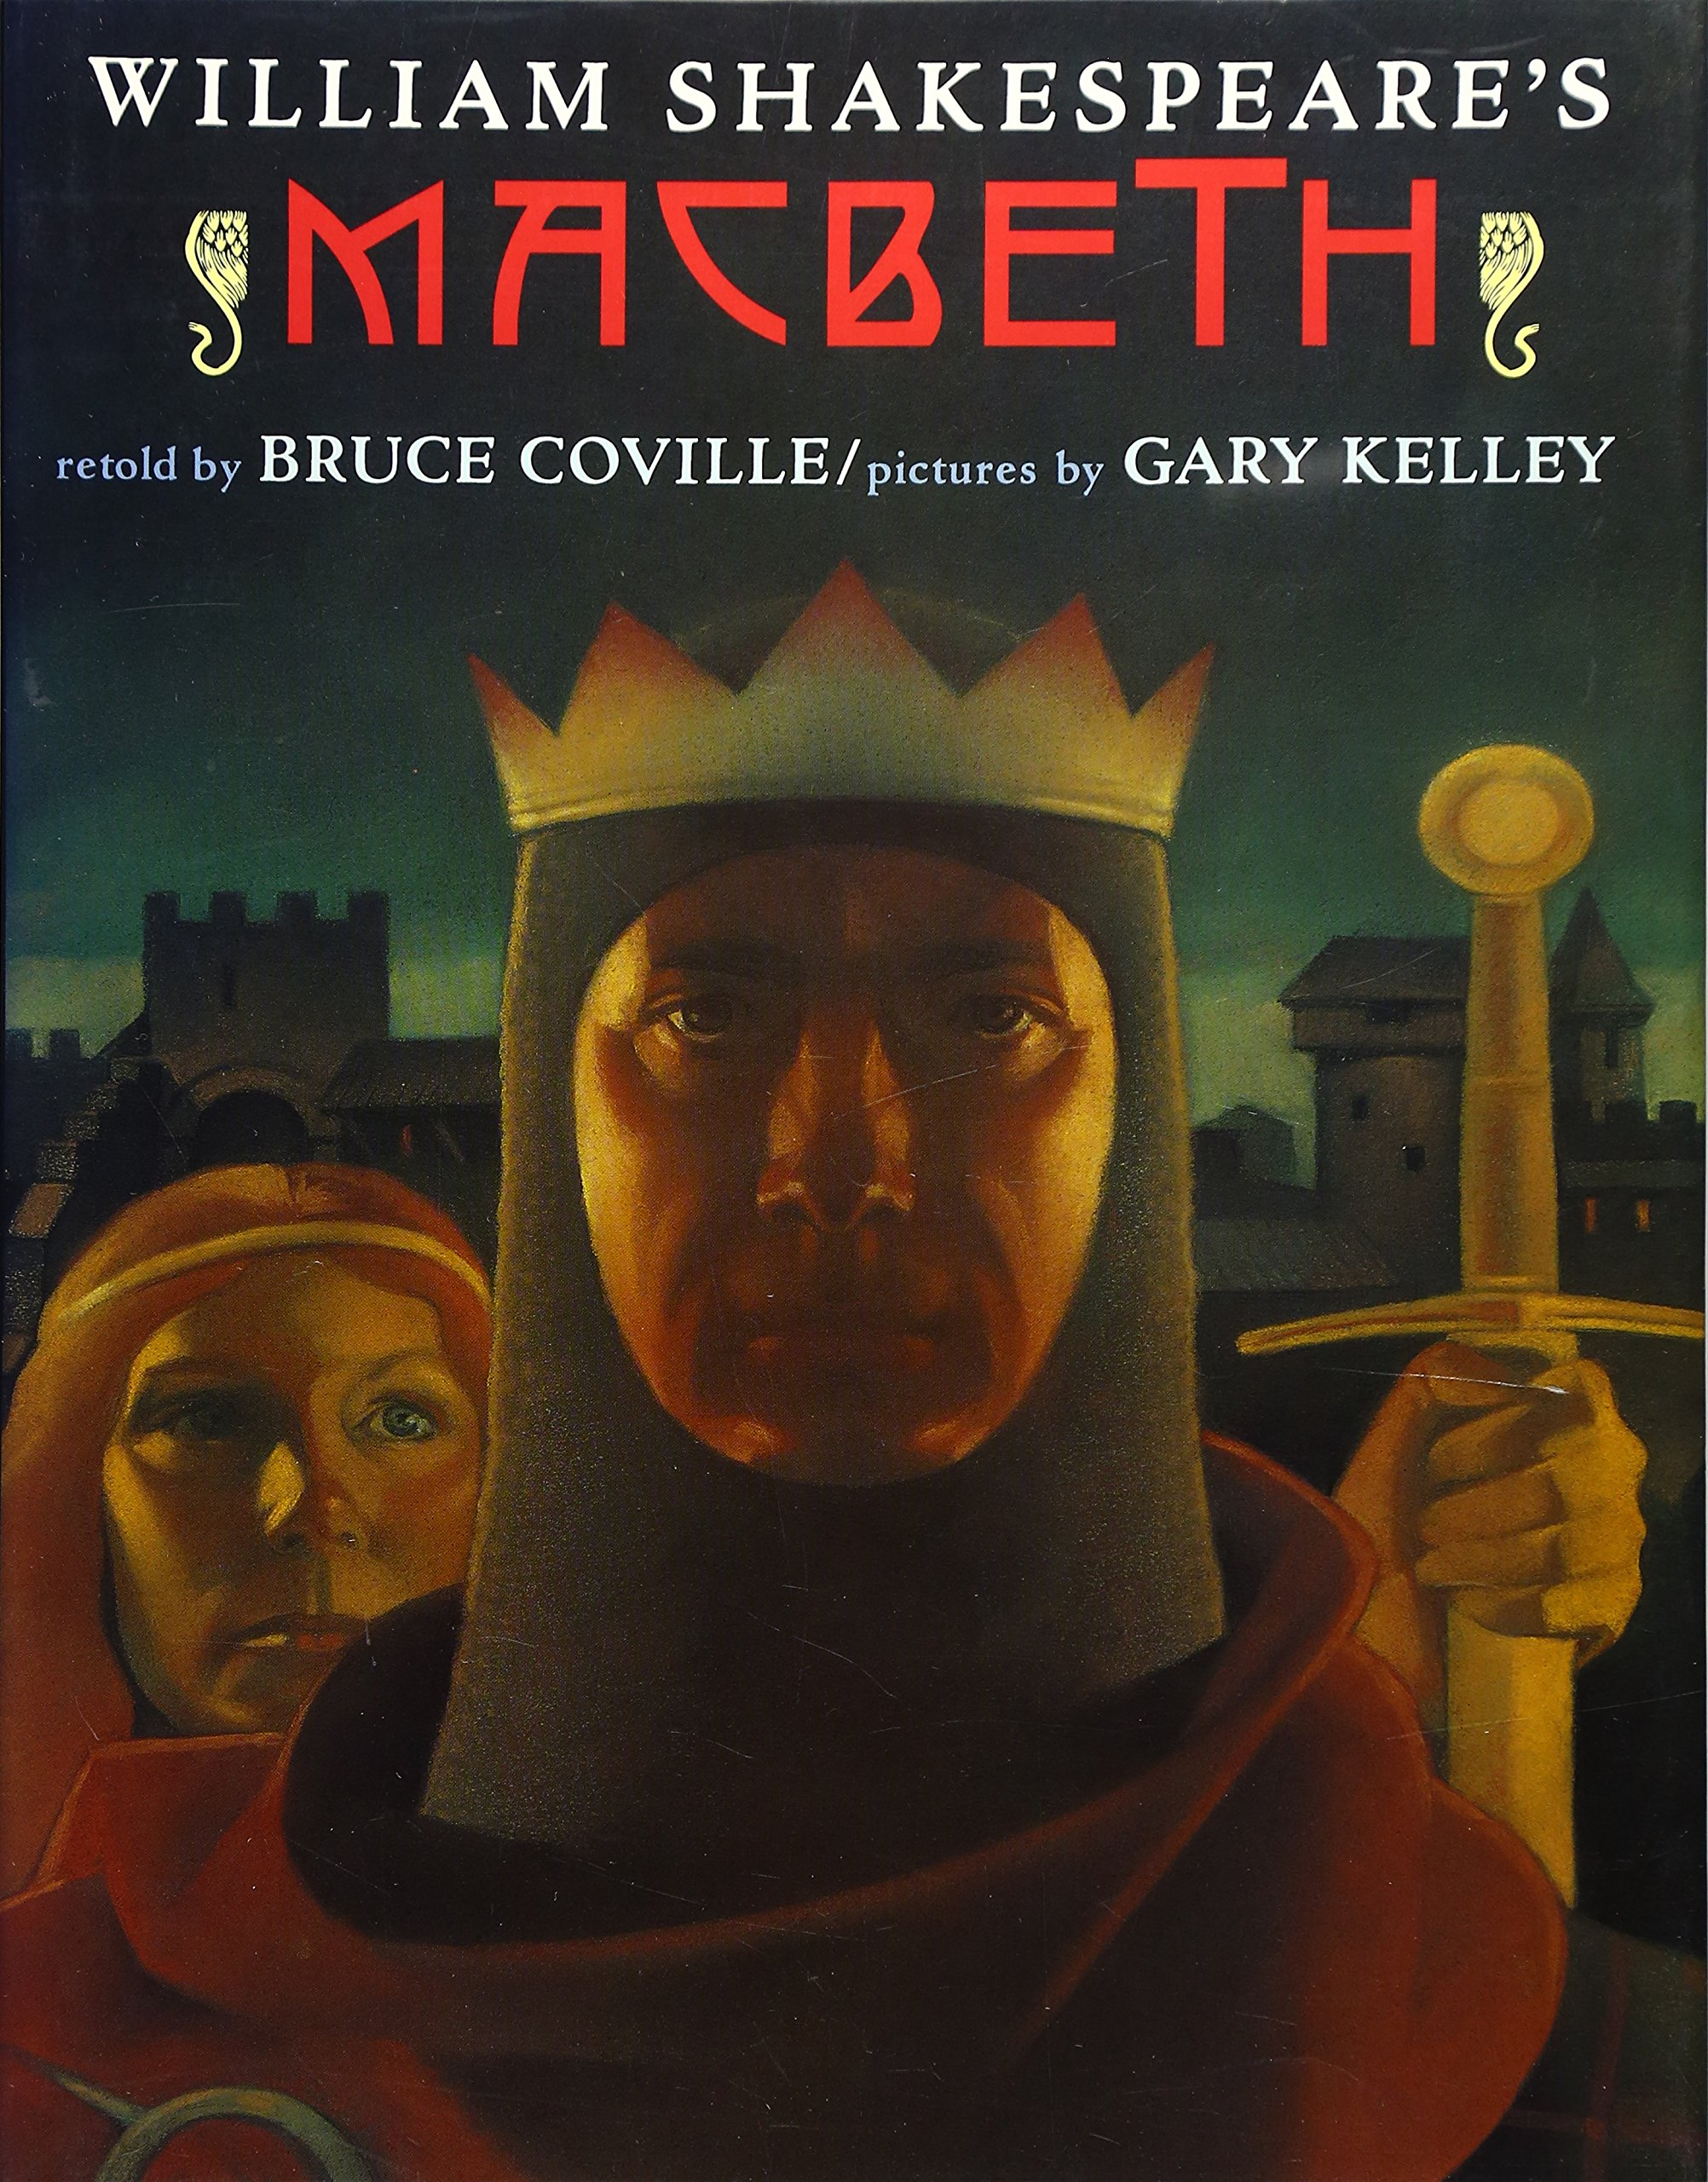 william shakespeare s macbeth bruce coville gary kelley william shakespeare s macbeth bruce coville gary kelley 9780803718999 com books